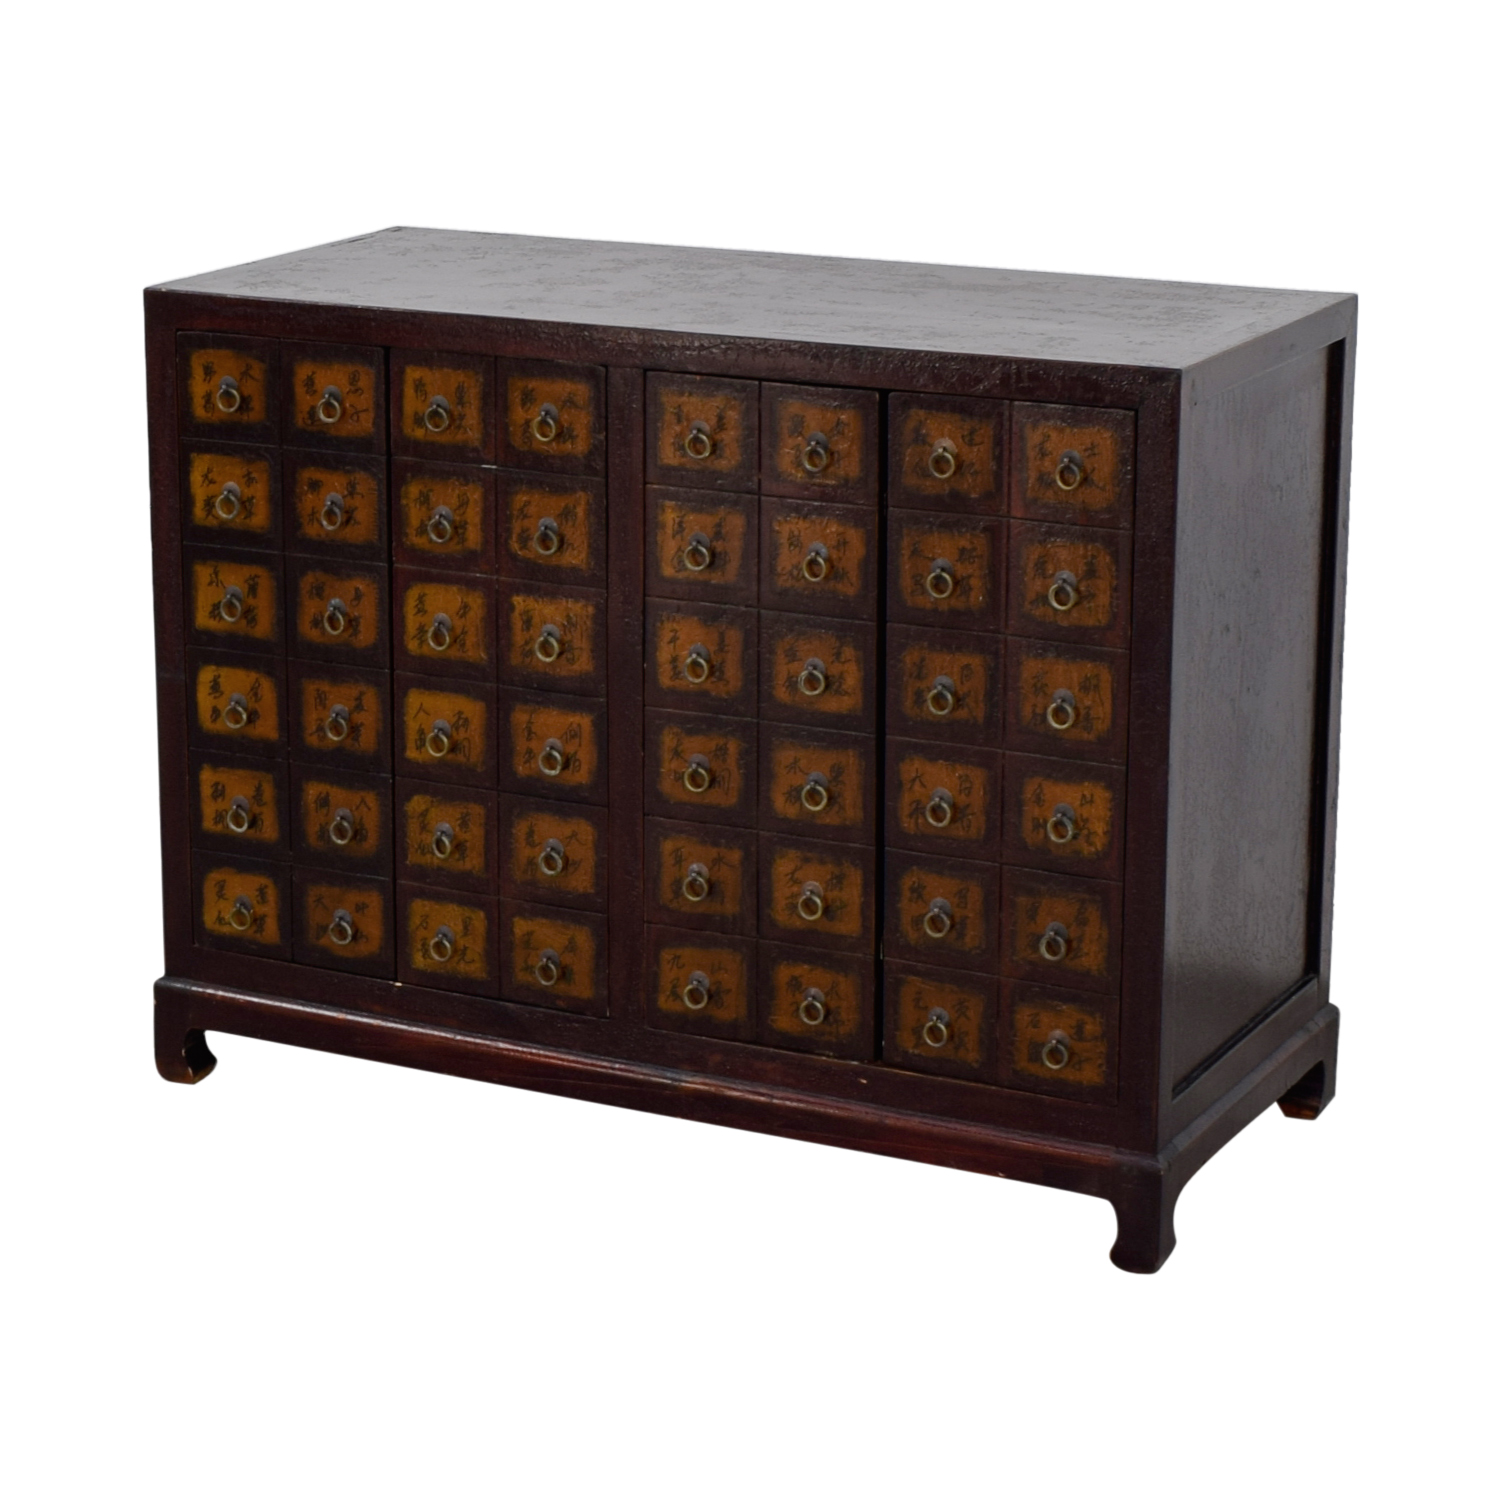 ... Asian Barn Antique Chinese Cabinet / Cabinets & Sideboards ... - 79% OFF - Asian Barn Asian Barn Antique Chinese Cabinet / Storage